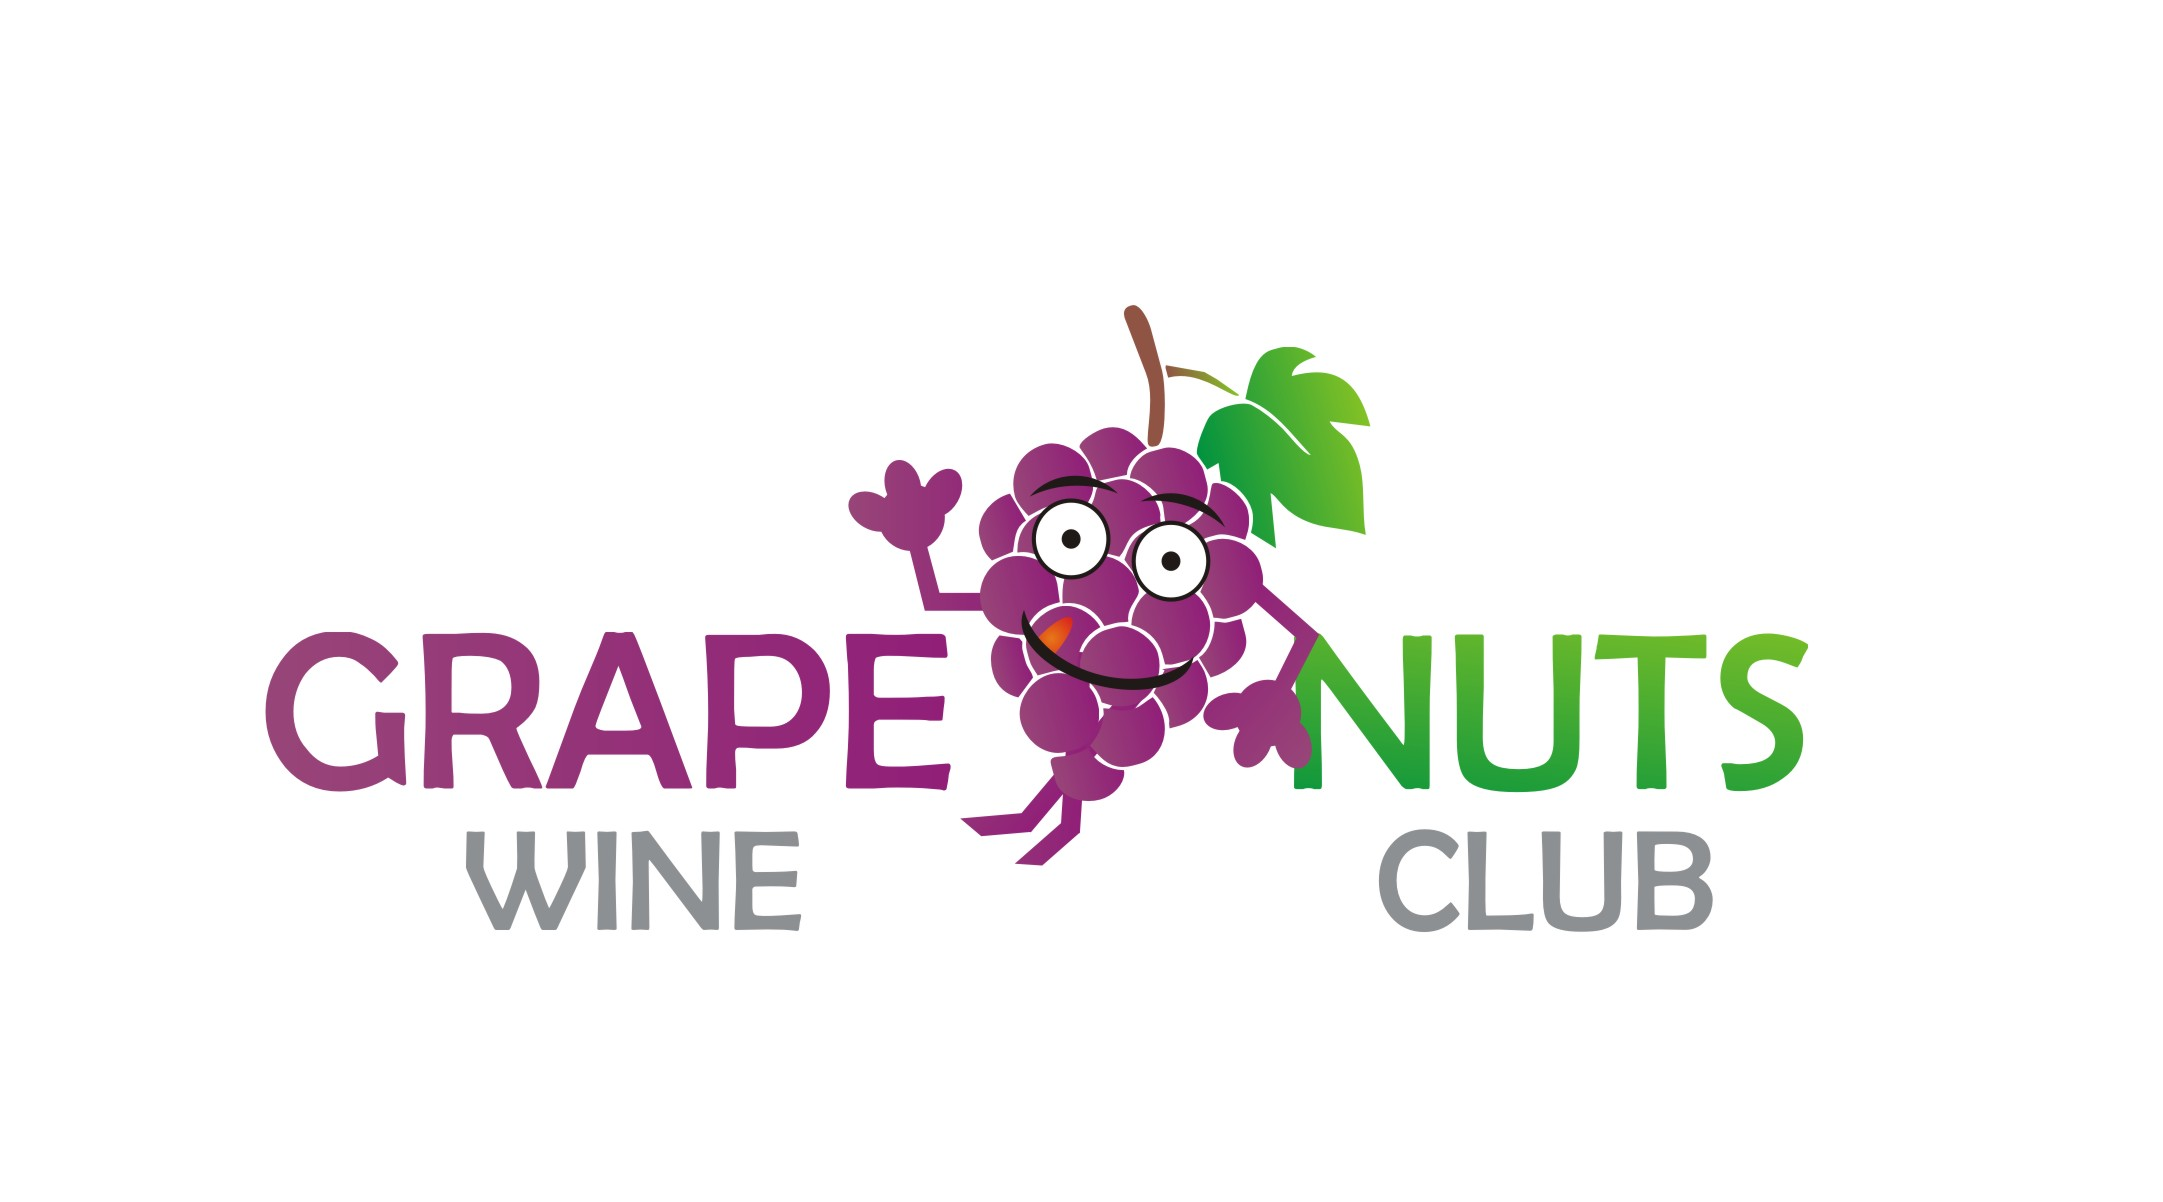 Grape Nuts Wine Club Wallpaper